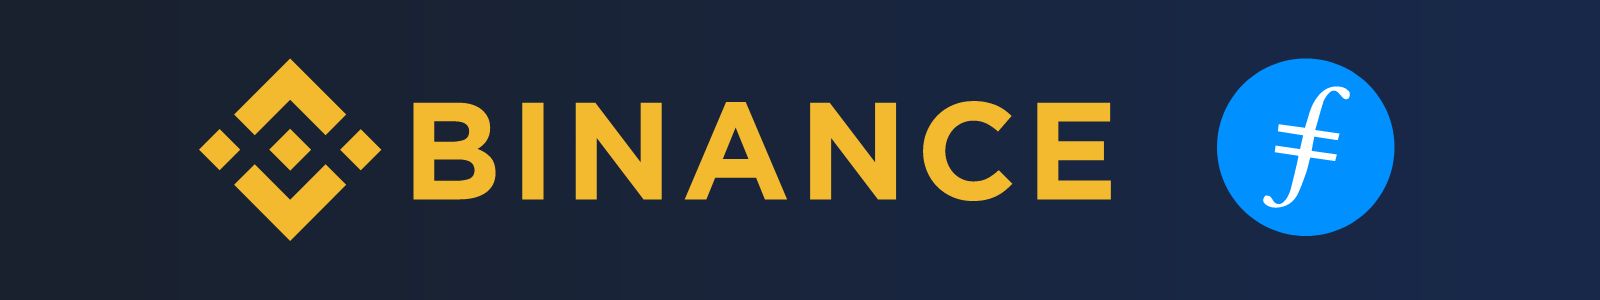 Binance Filecoin FIL Trading Competition